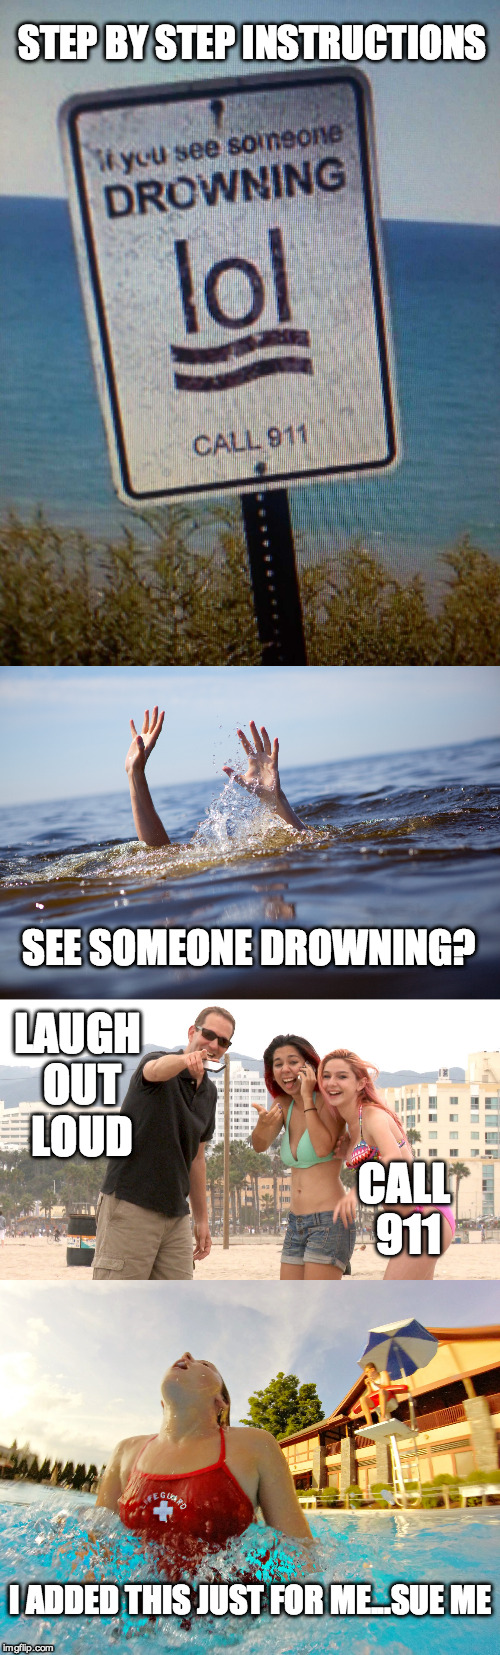 Poor design even though it is amusing | STEP BY STEP INSTRUCTIONS SEE SOMEONE DROWNING? LAUGH OUT LOUD CALL 911 I ADDED THIS JUST FOR ME...SUE ME | image tagged in drown,lol,funny sign,911 | made w/ Imgflip meme maker